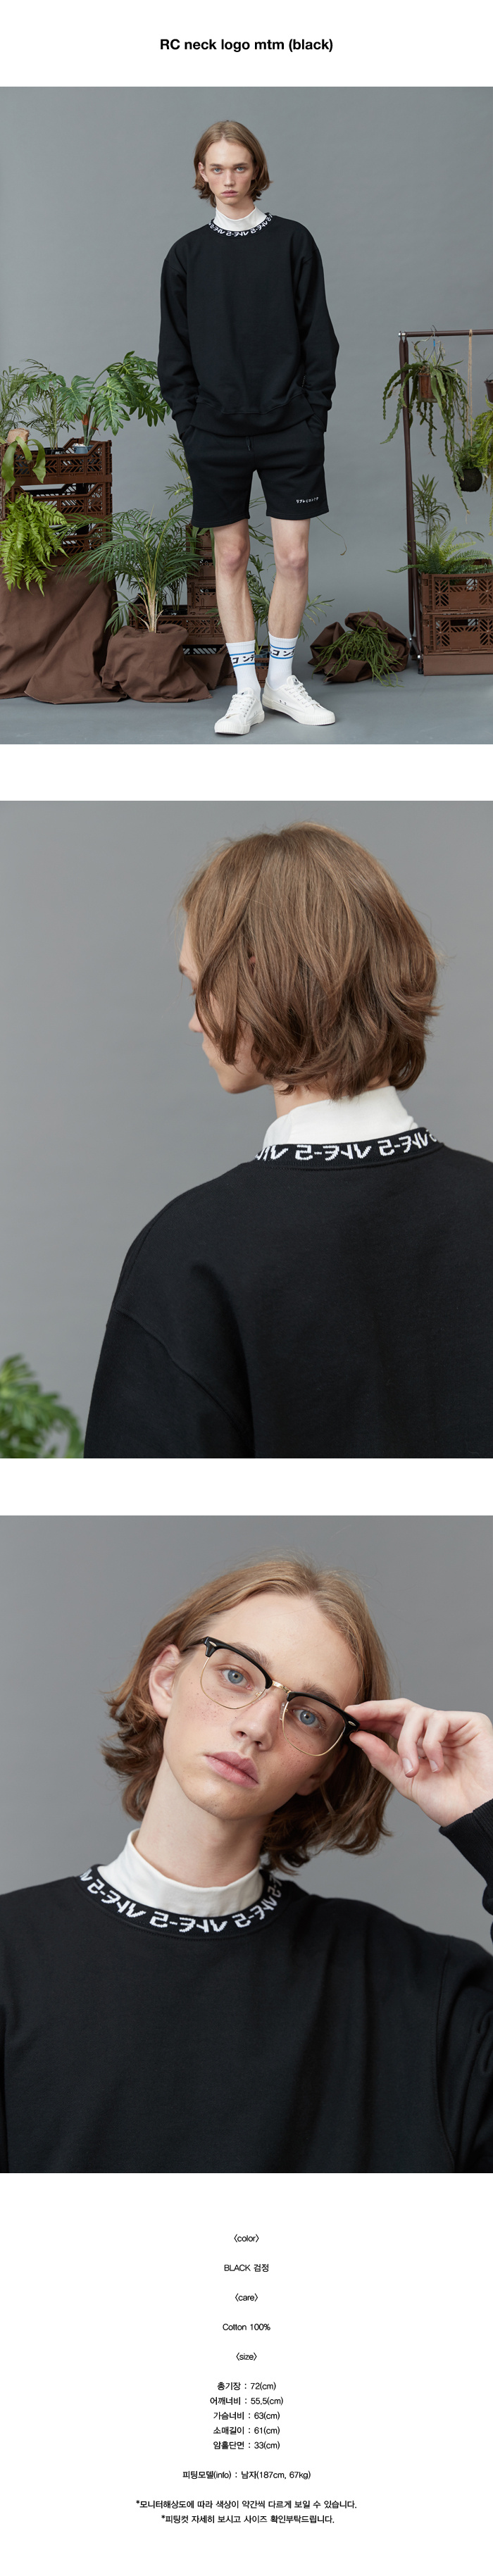 리플레이컨테이너(REPLAY CONTAINER) RC neck logo mtm (black)